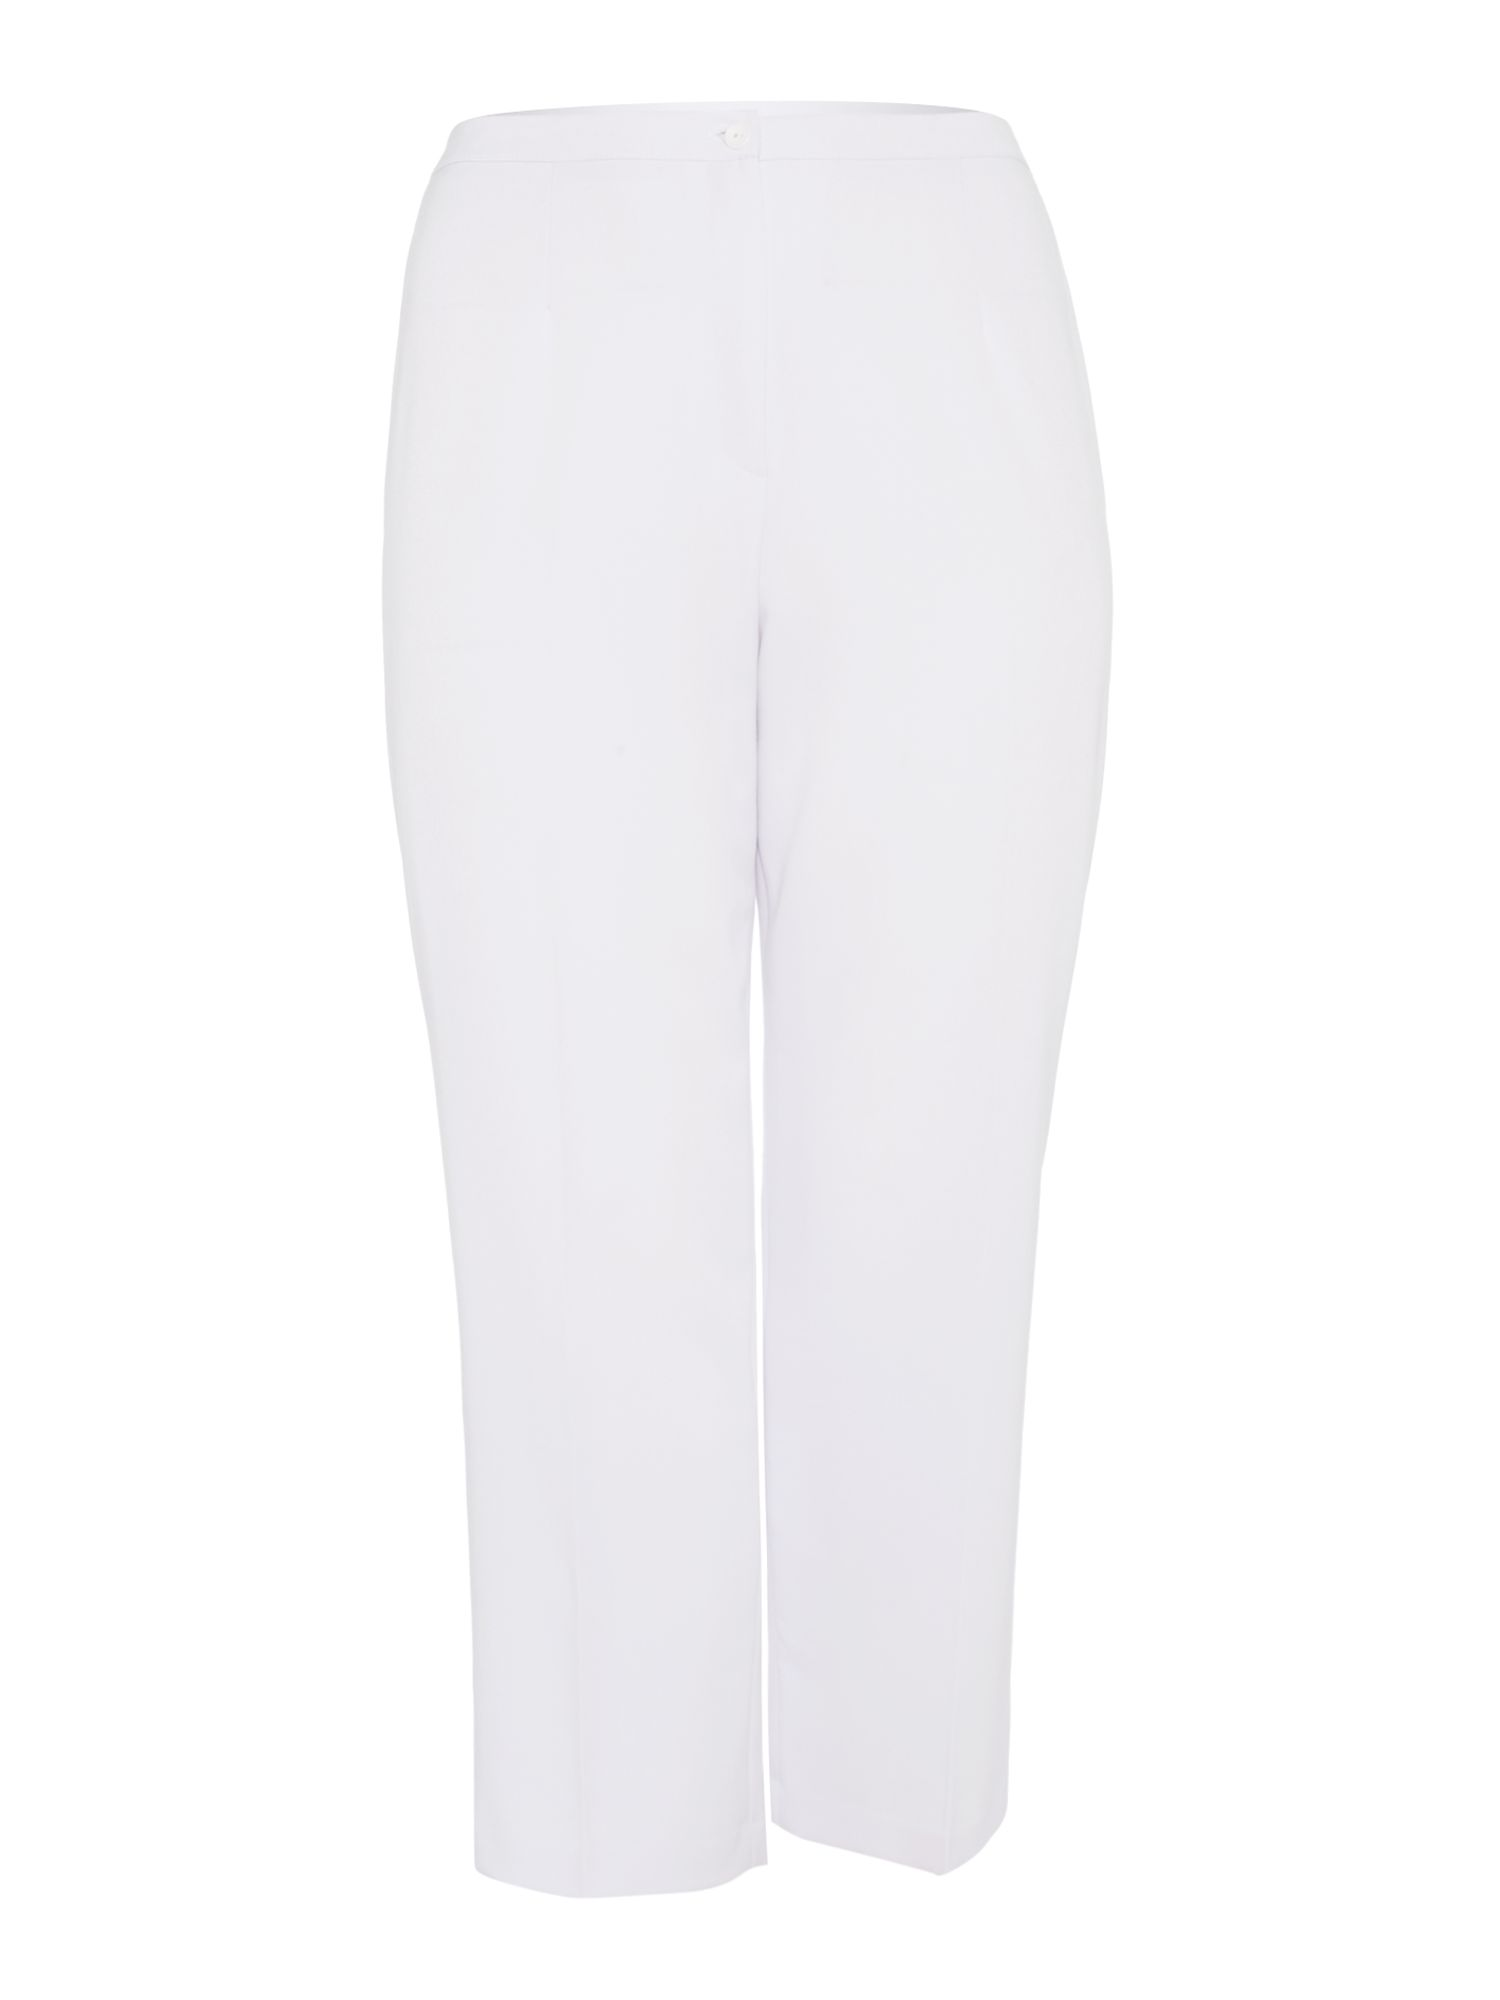 Annabelle Annabelle Plus Size Tailored trousers, White